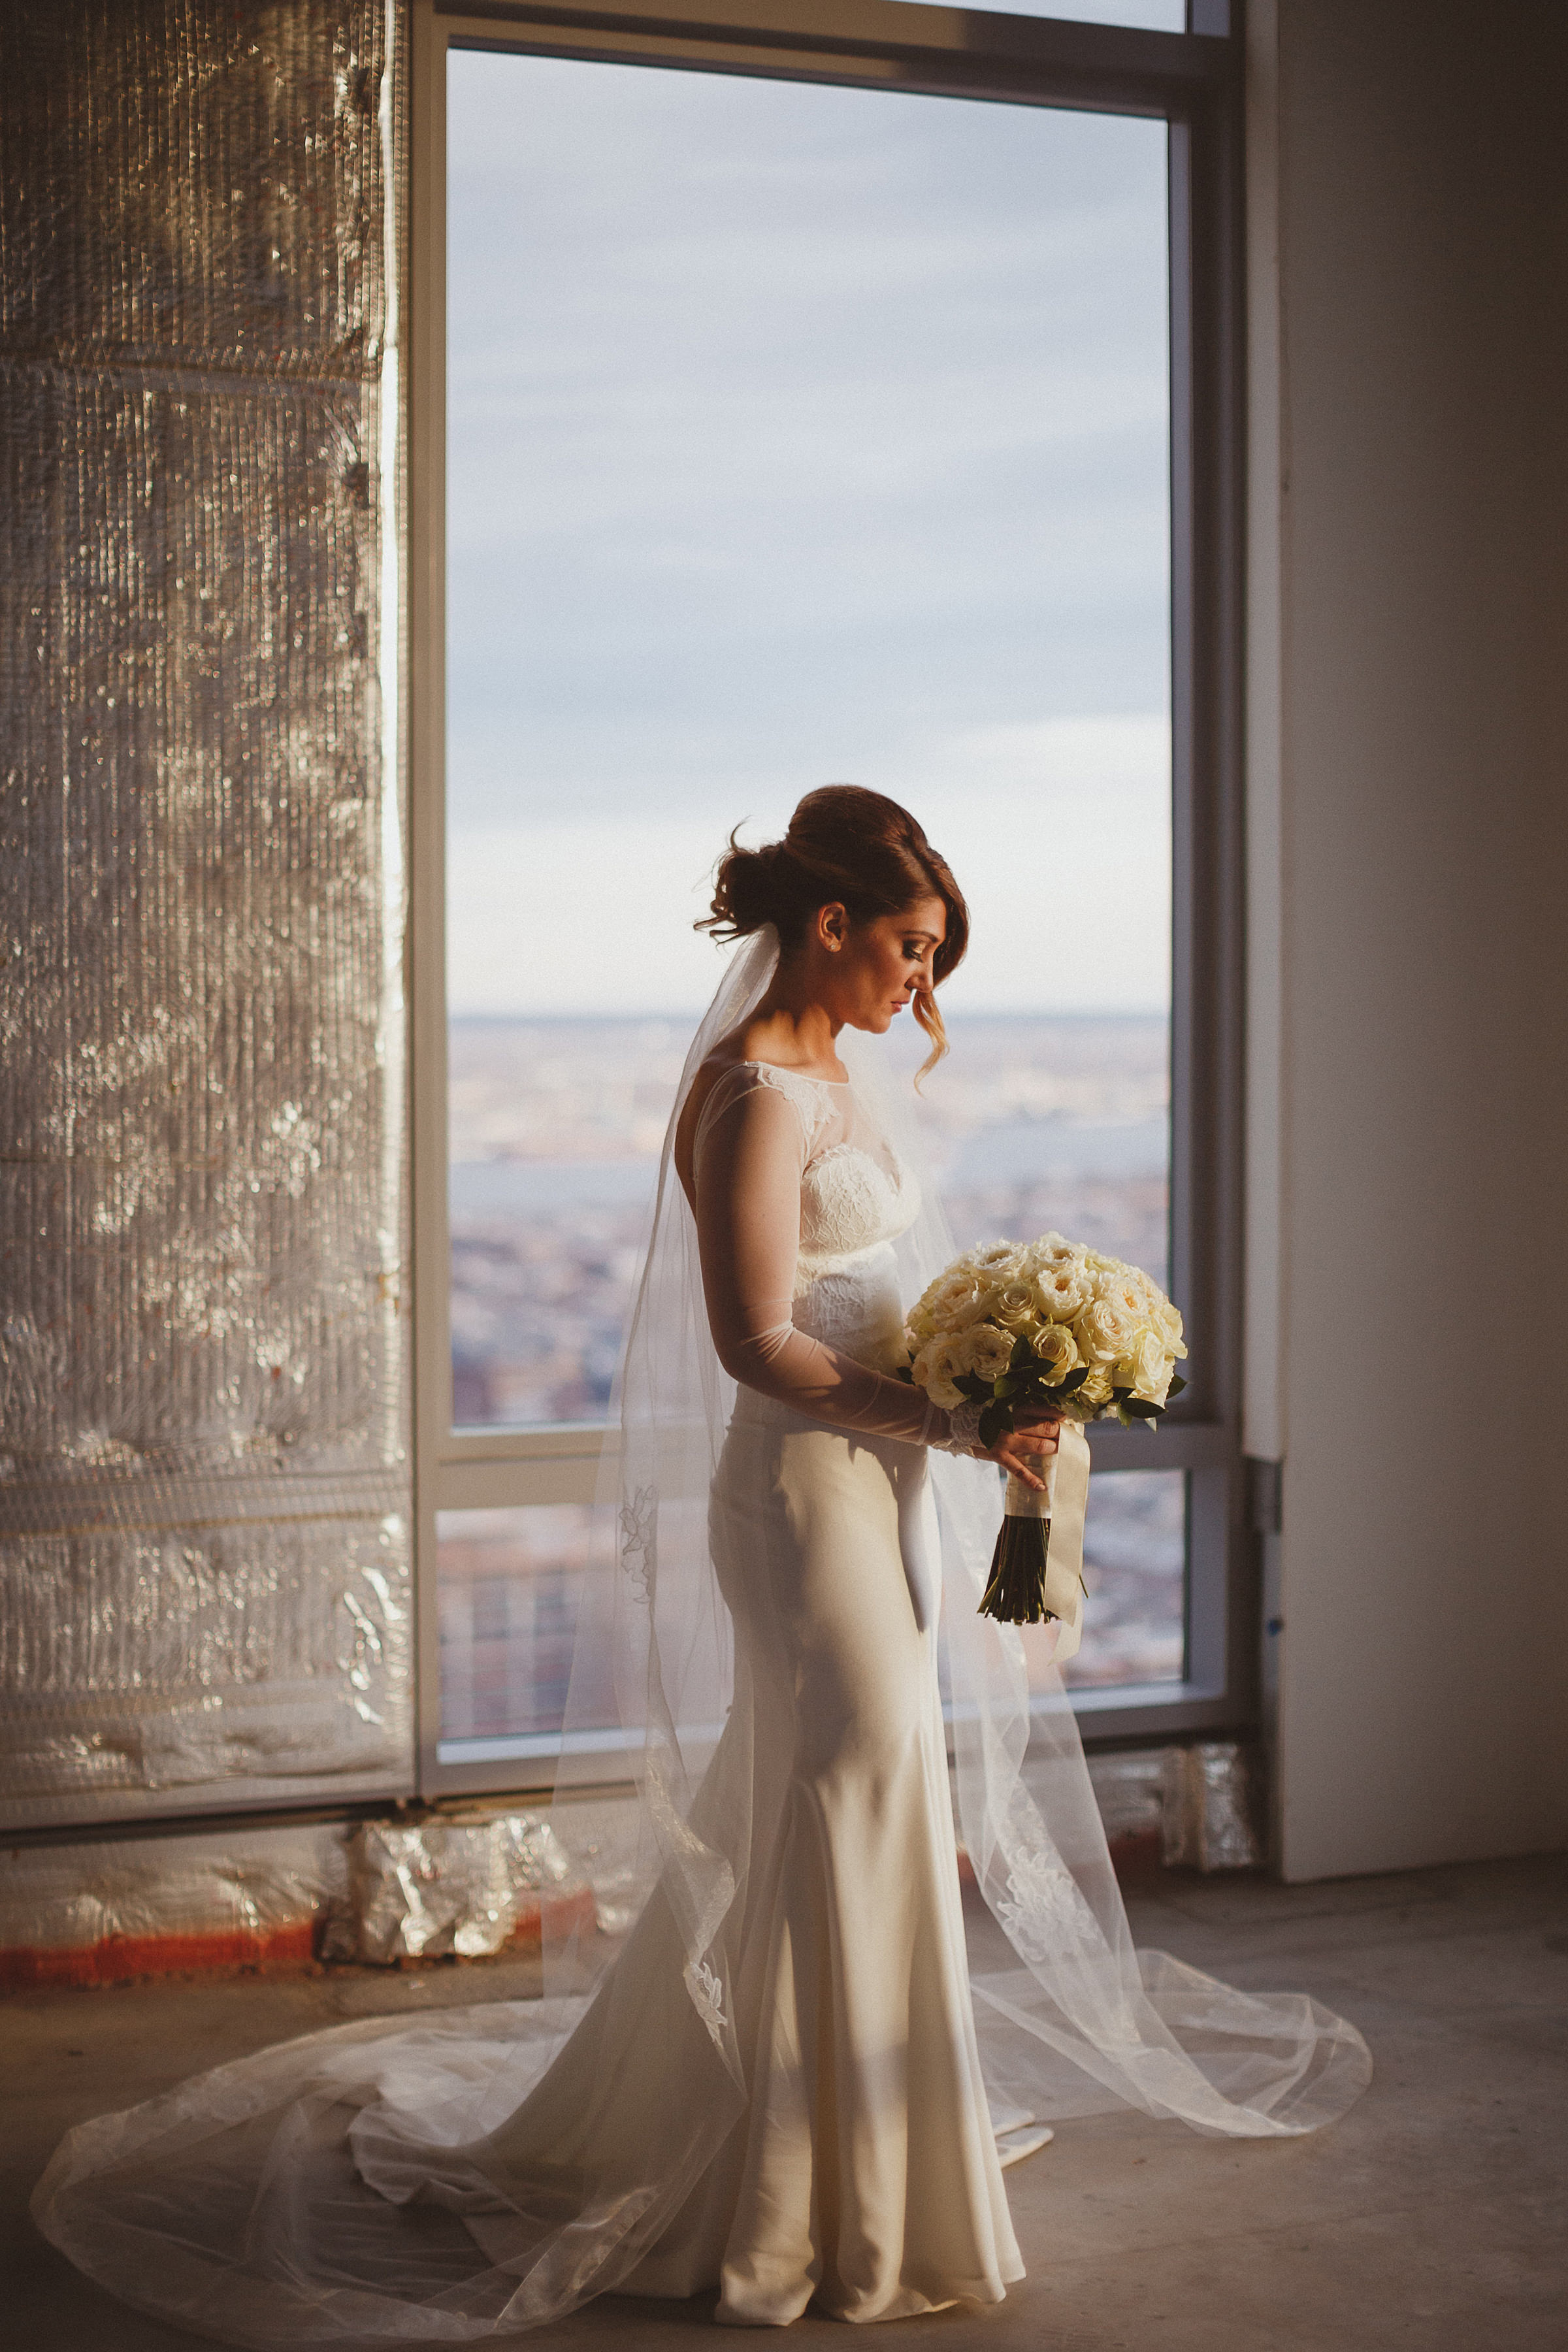 Full length bridal portrait against window - photo by Ed Peers Photography